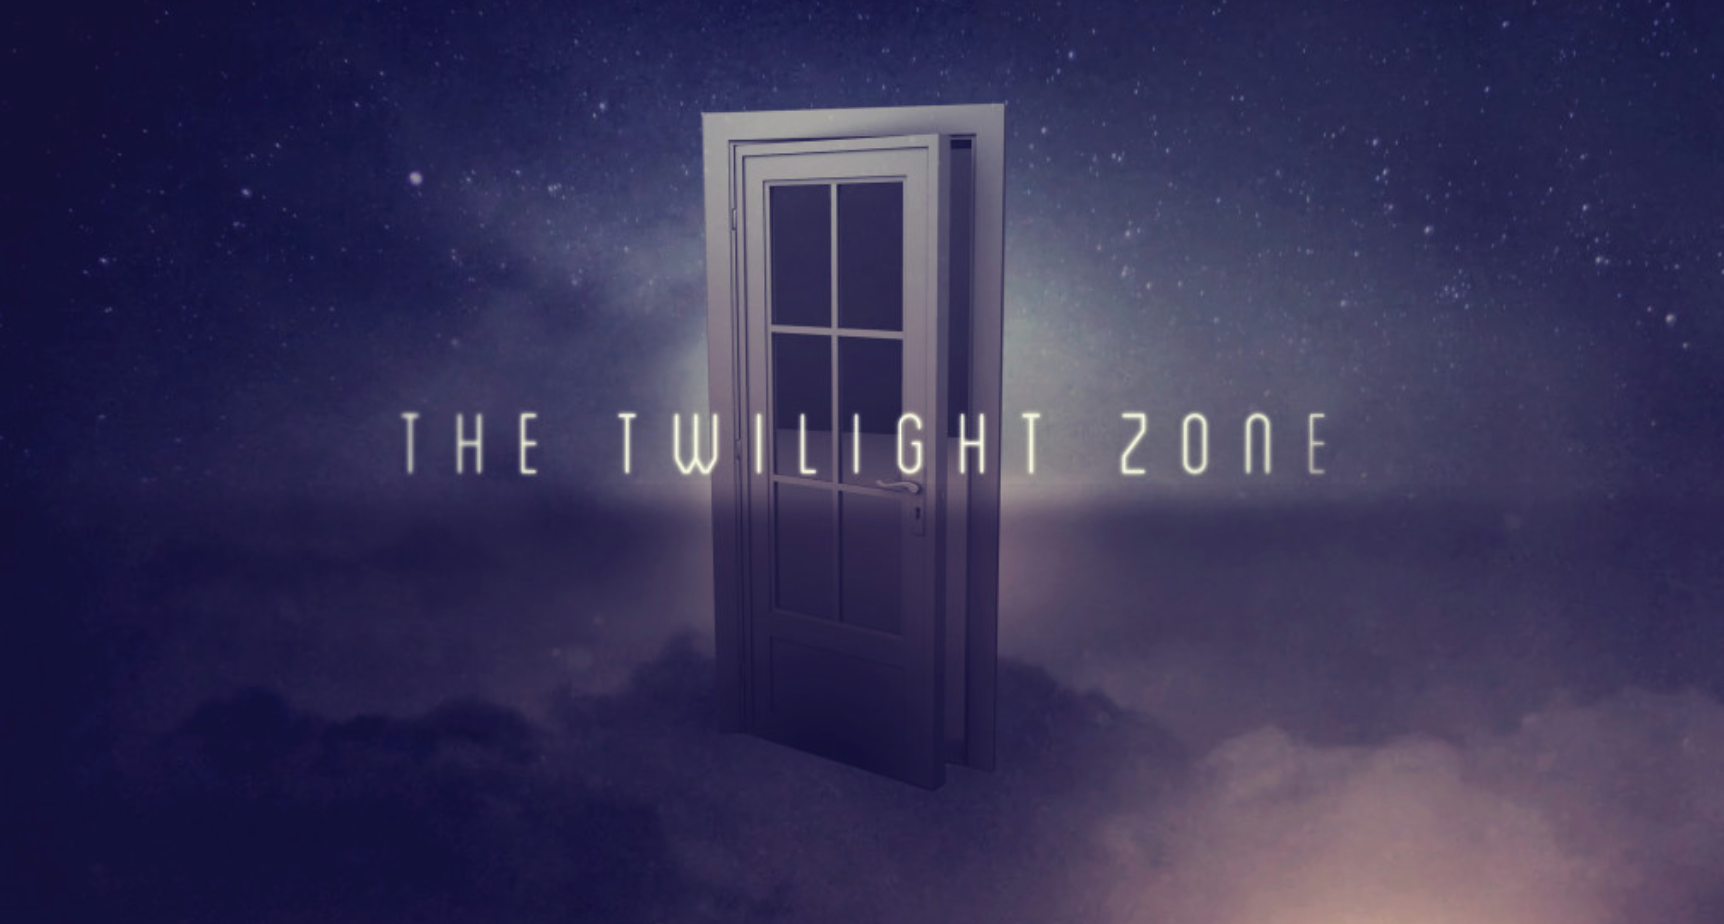 The Twilight Zone. Image source:  Wired